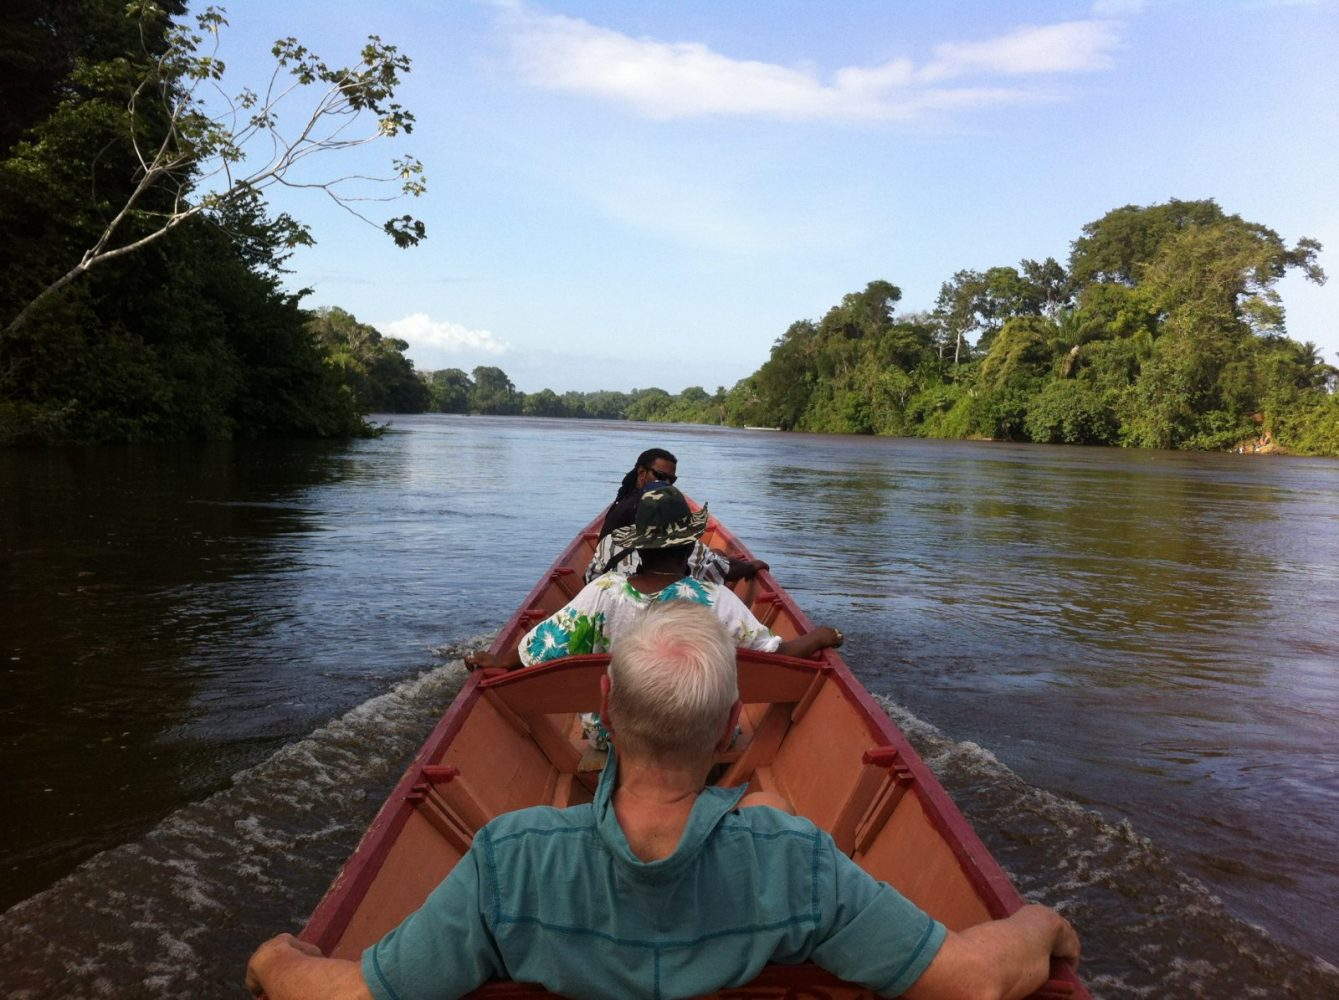 Suriname: The fantastic lodges of the Upper Suriname River